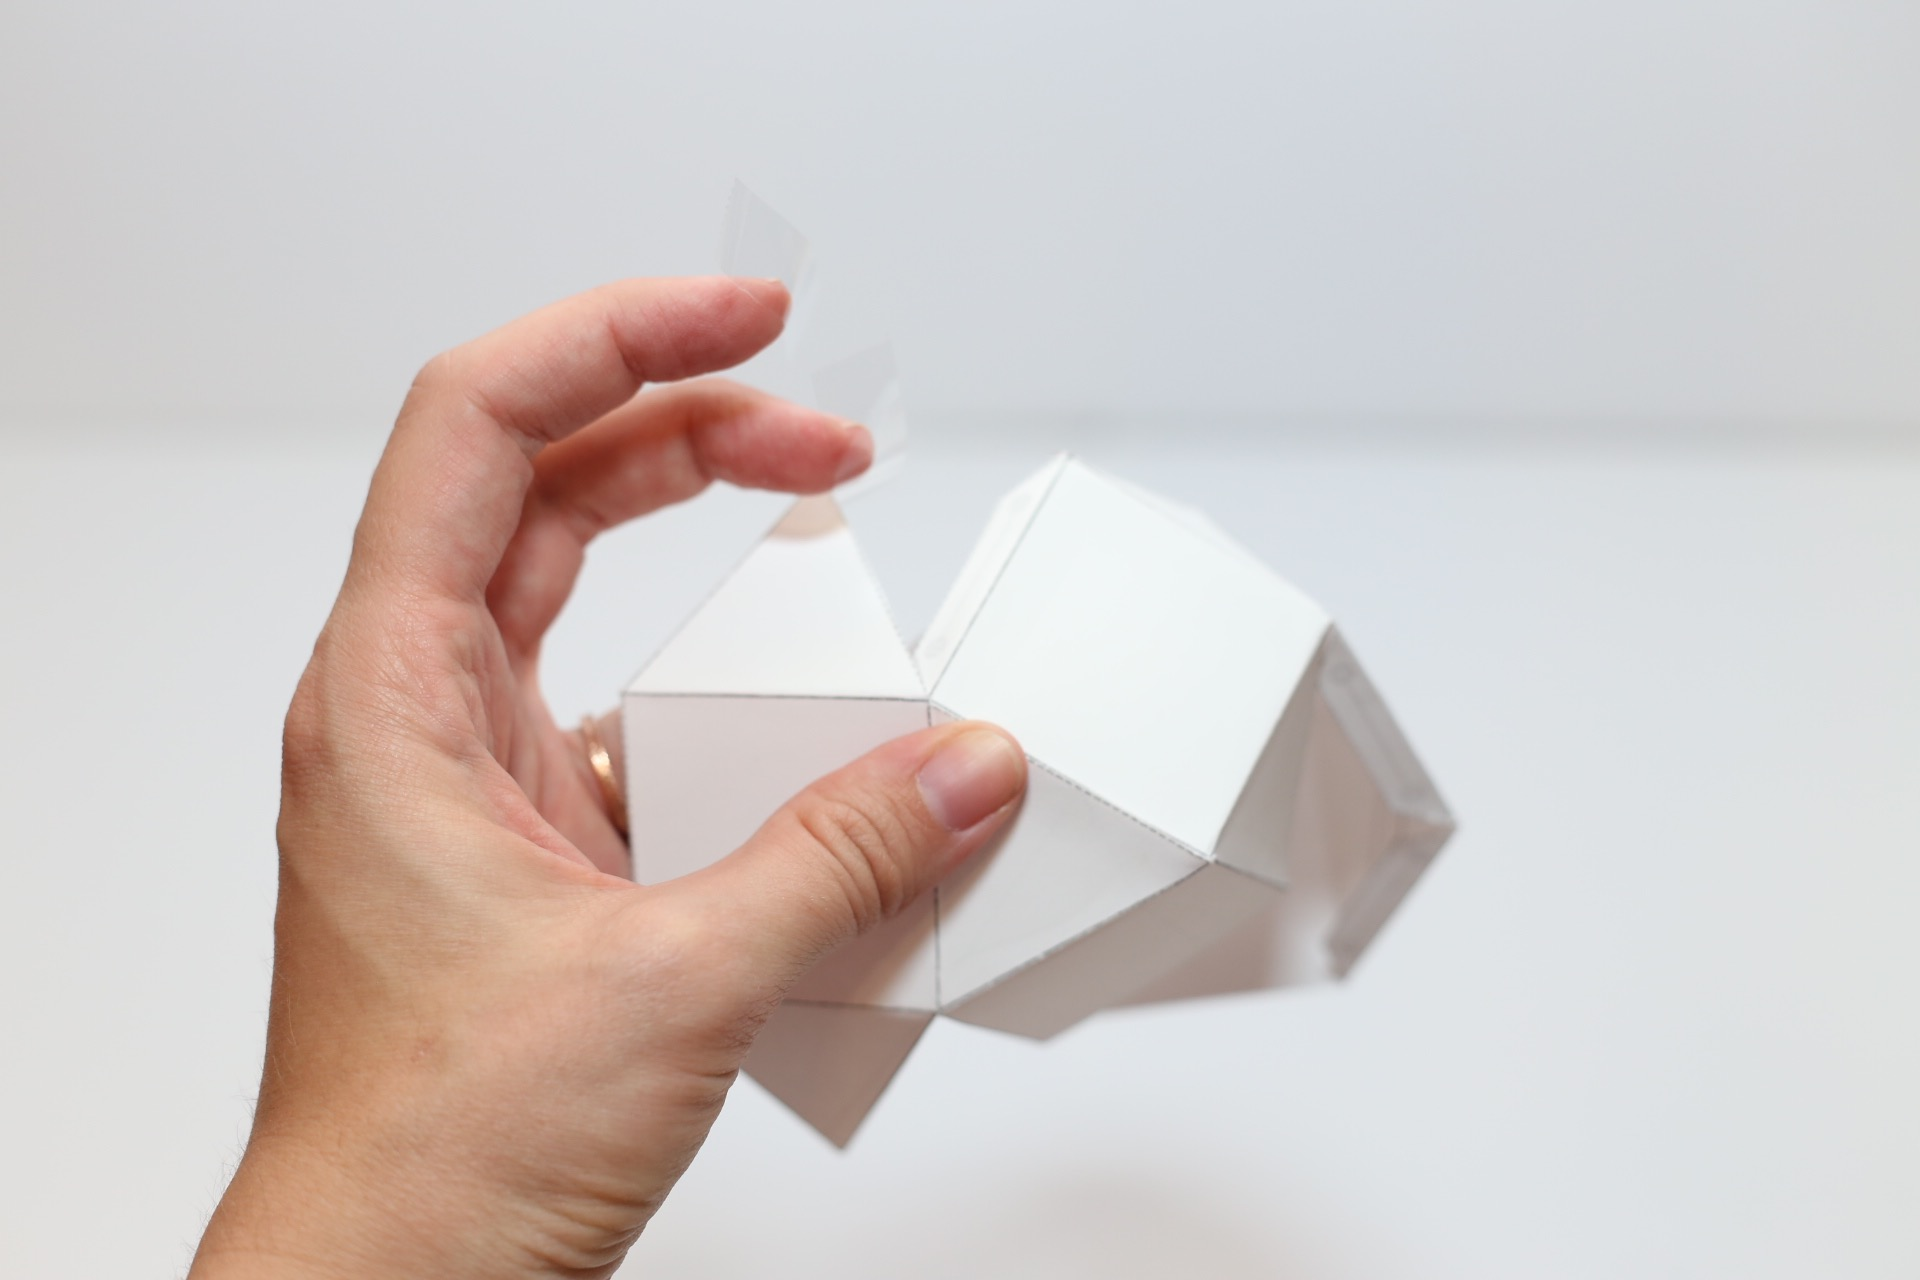 folding the edges of the geometric candles